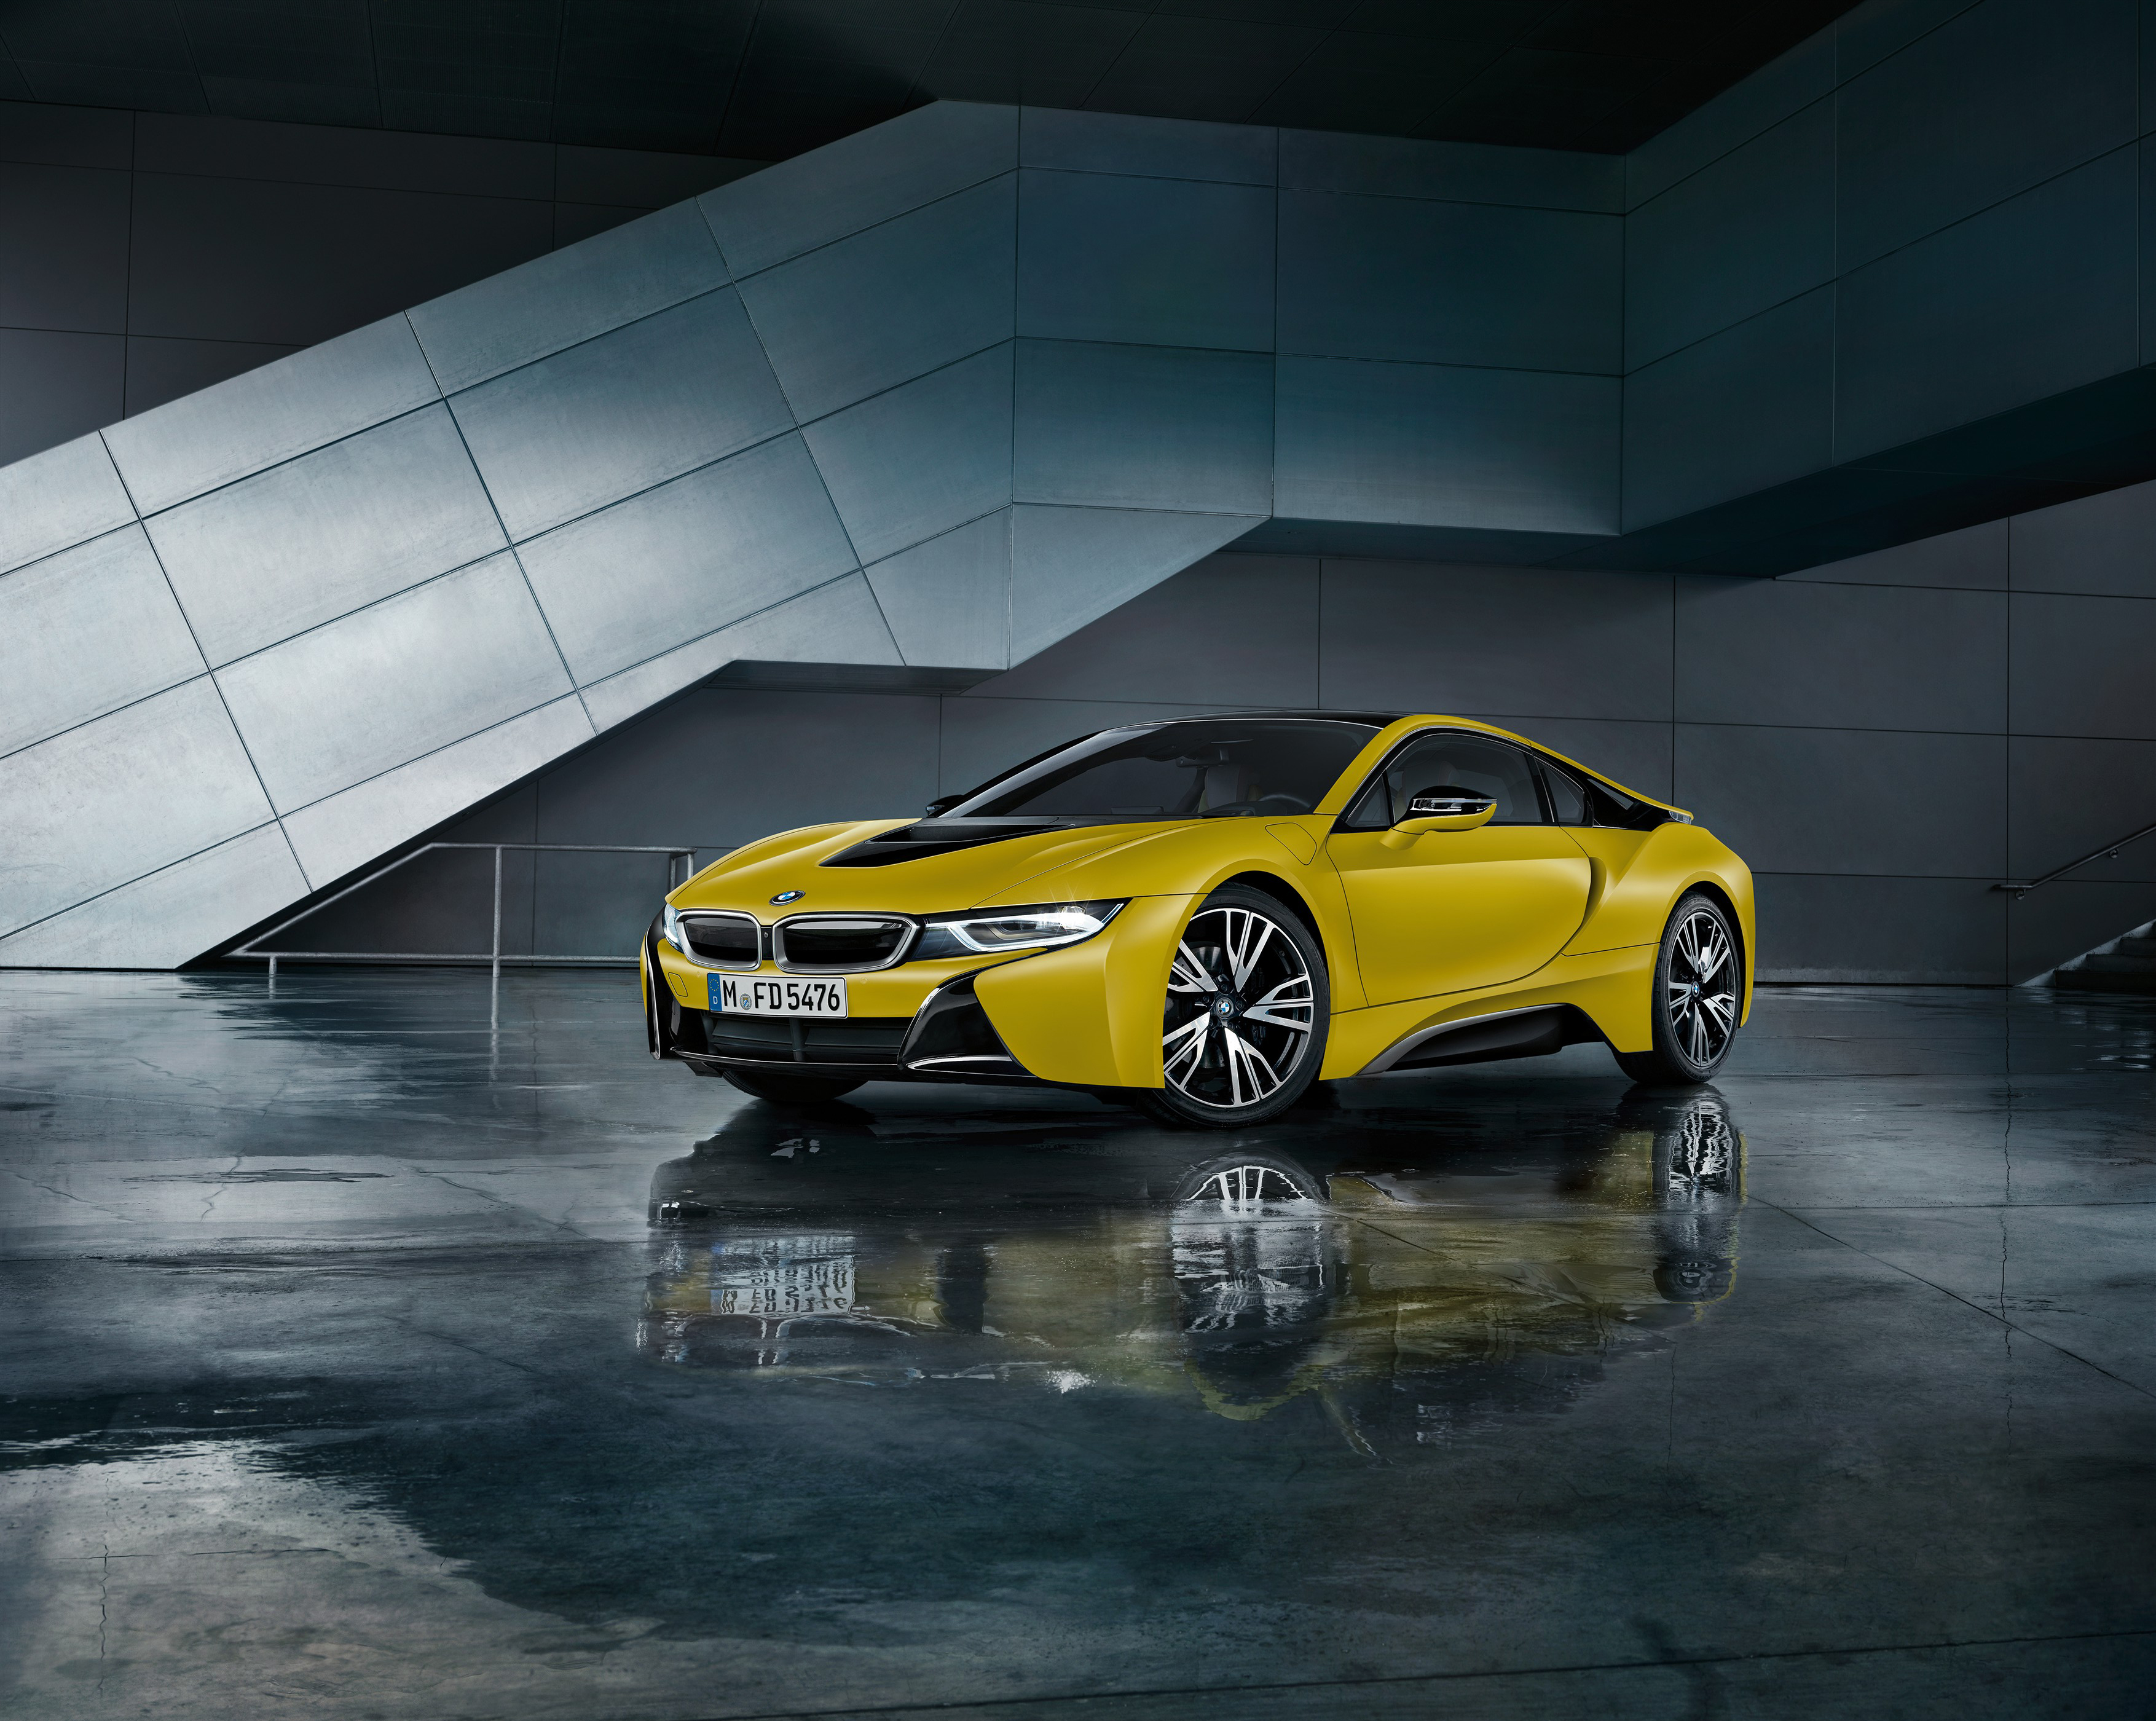 2018 Bmw I8 4k, HD Cars, 4k Wallpapers, Images